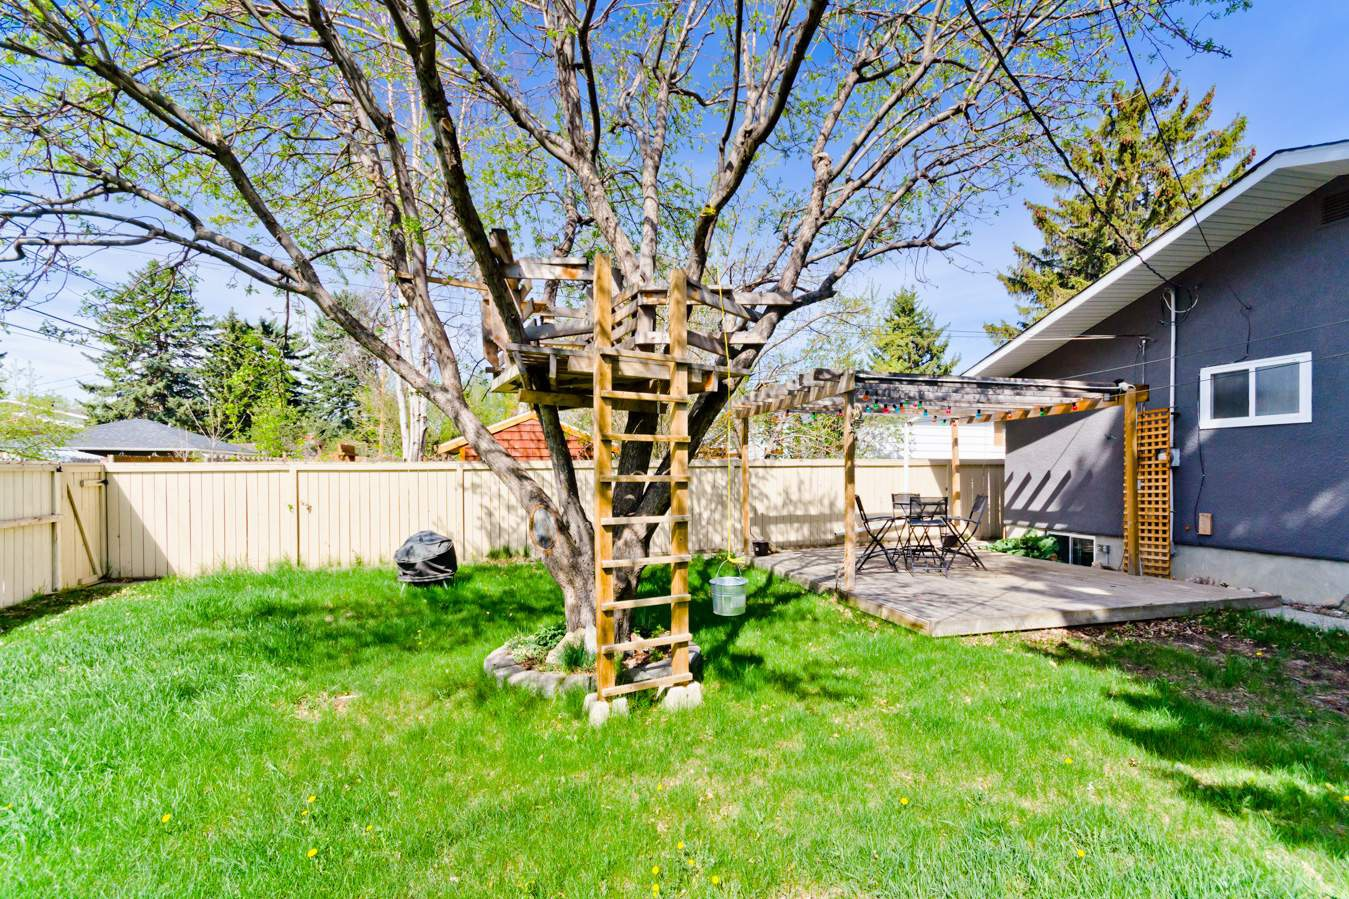 3327 35 Avenue SW in Calgary, AB is Now Available